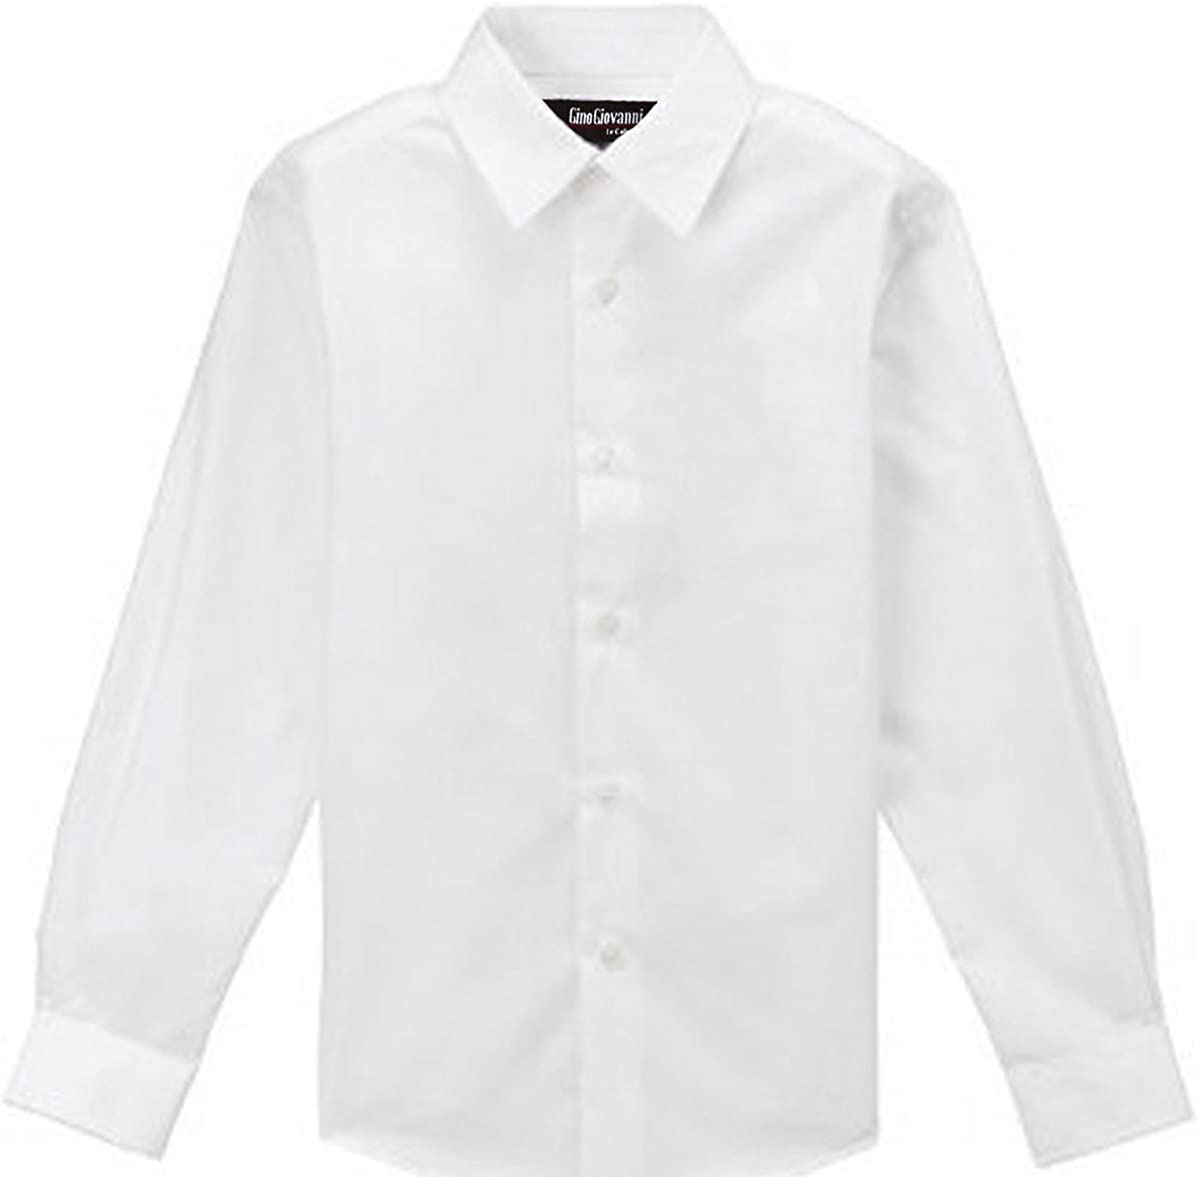 Gino Giovanni Formal White Dress Shirt for Boys From Baby to Teen